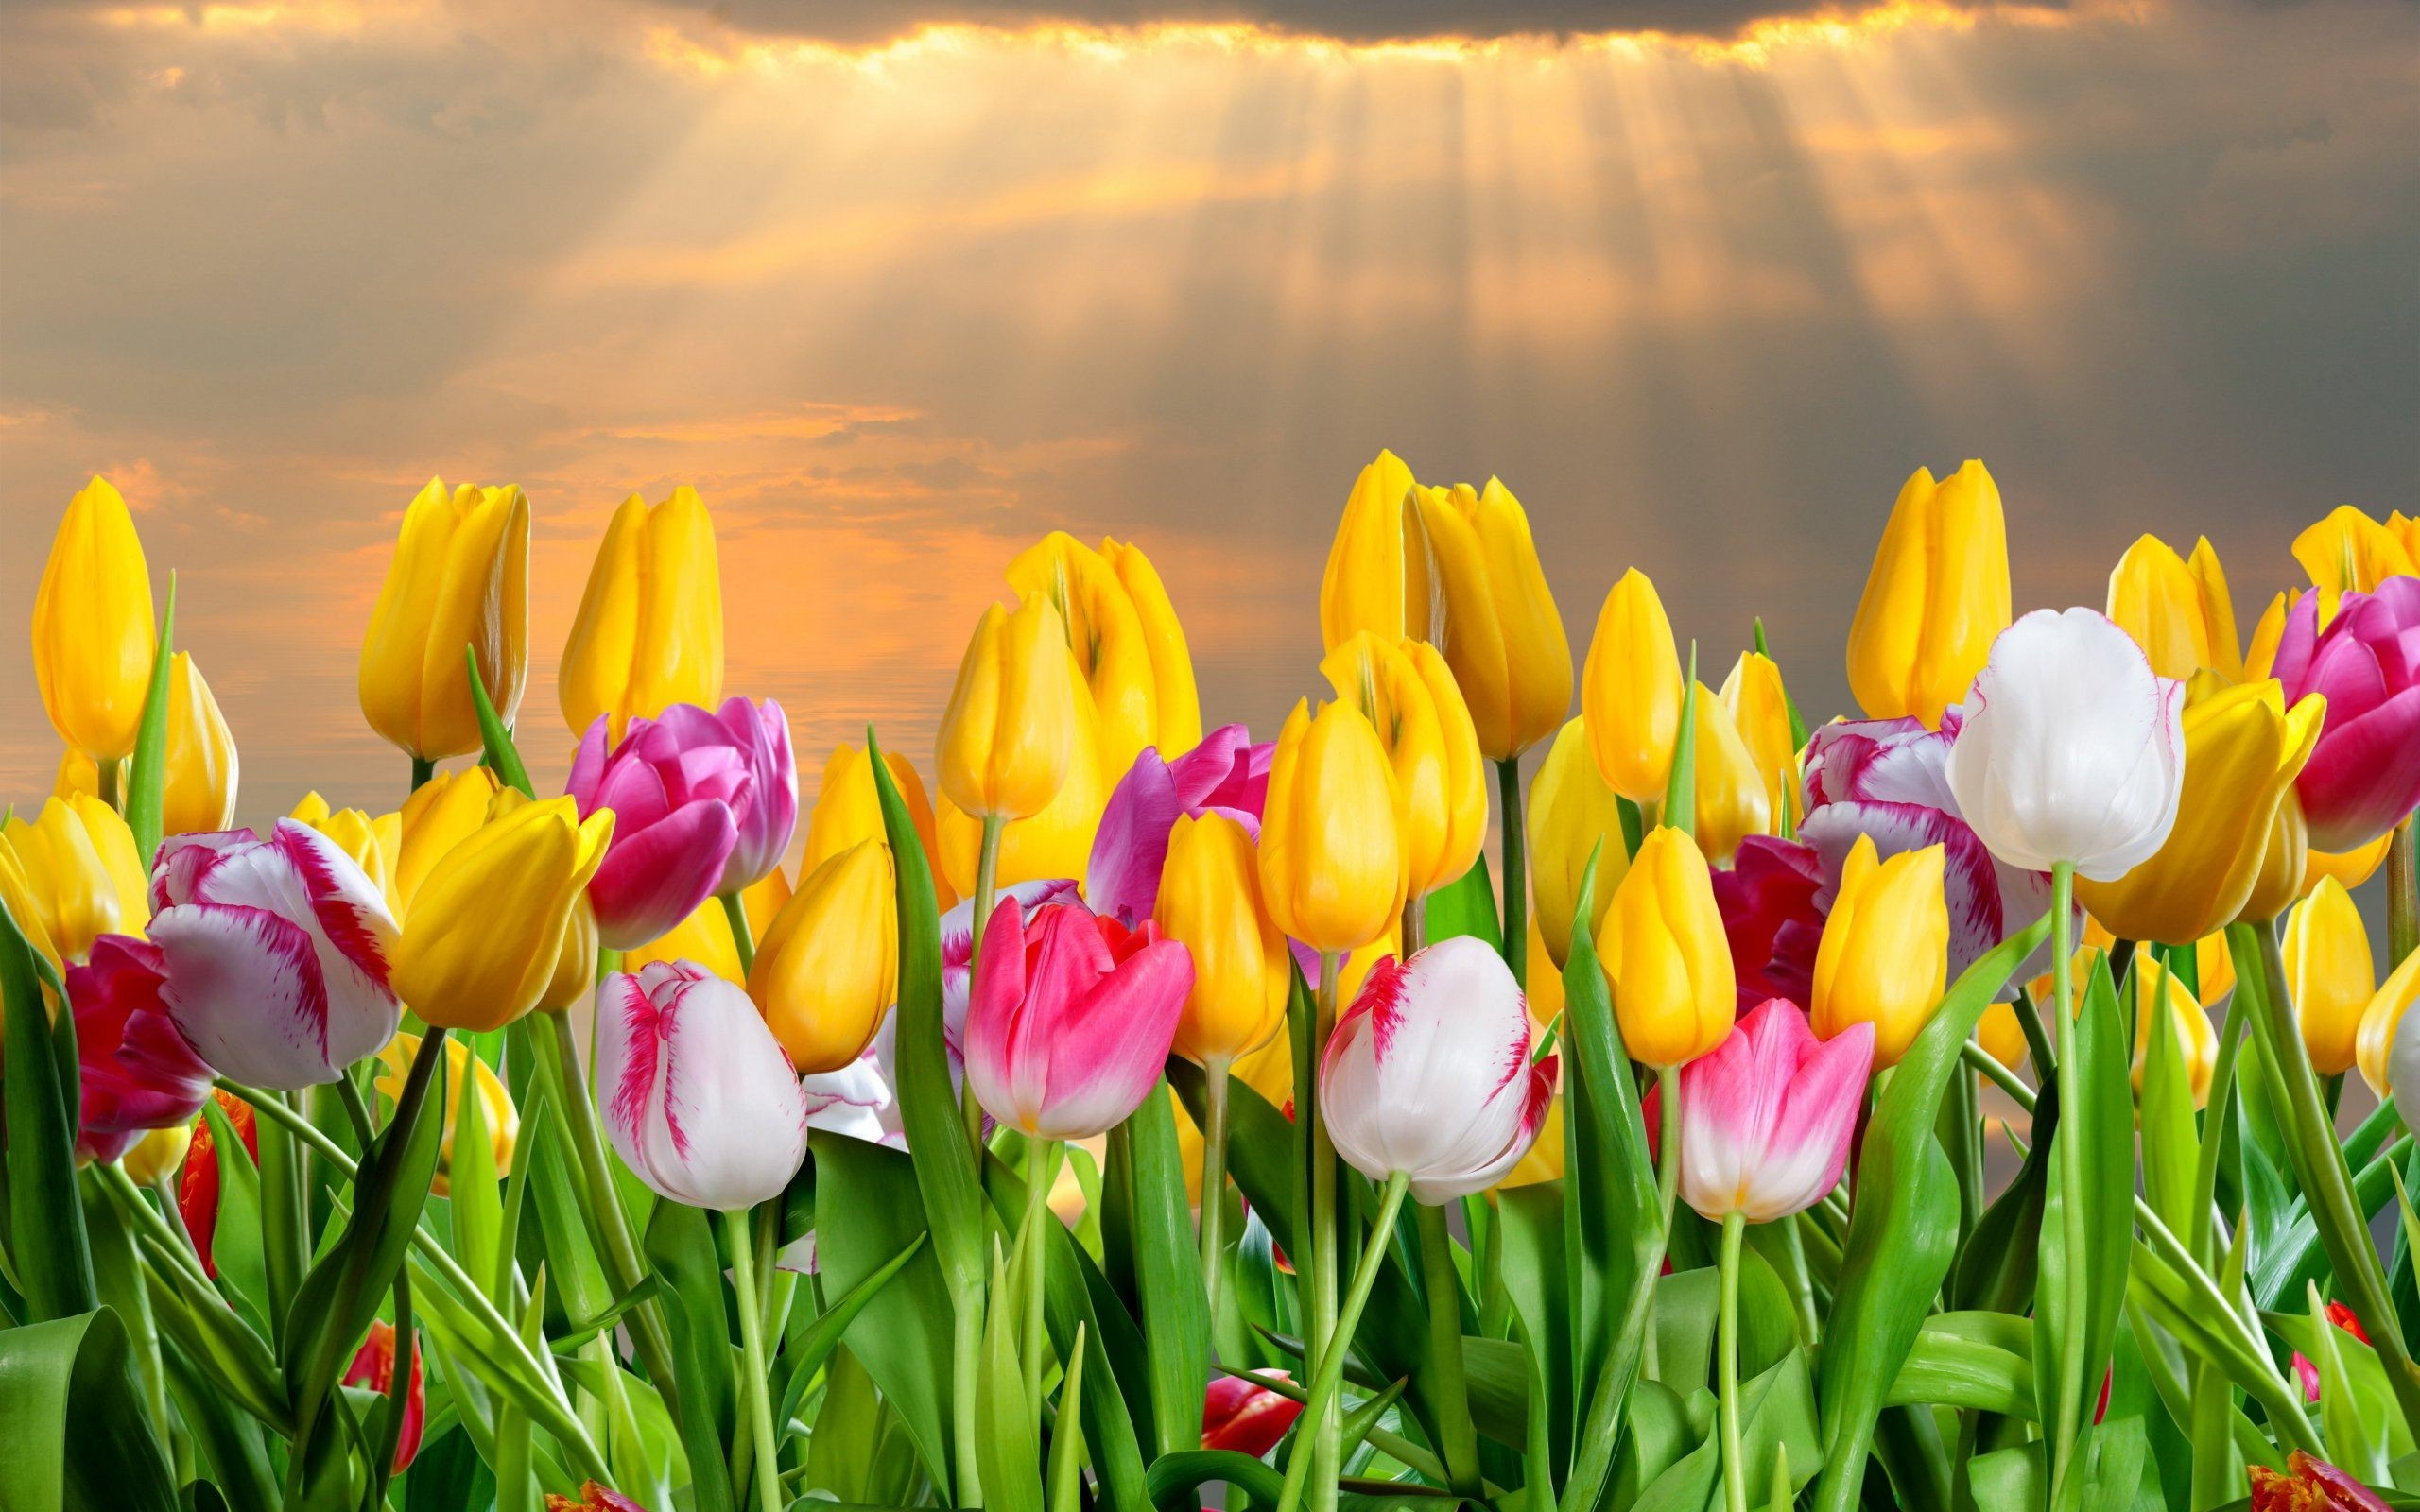 Tulips Flowers Background Hd , HD Wallpaper & Backgrounds